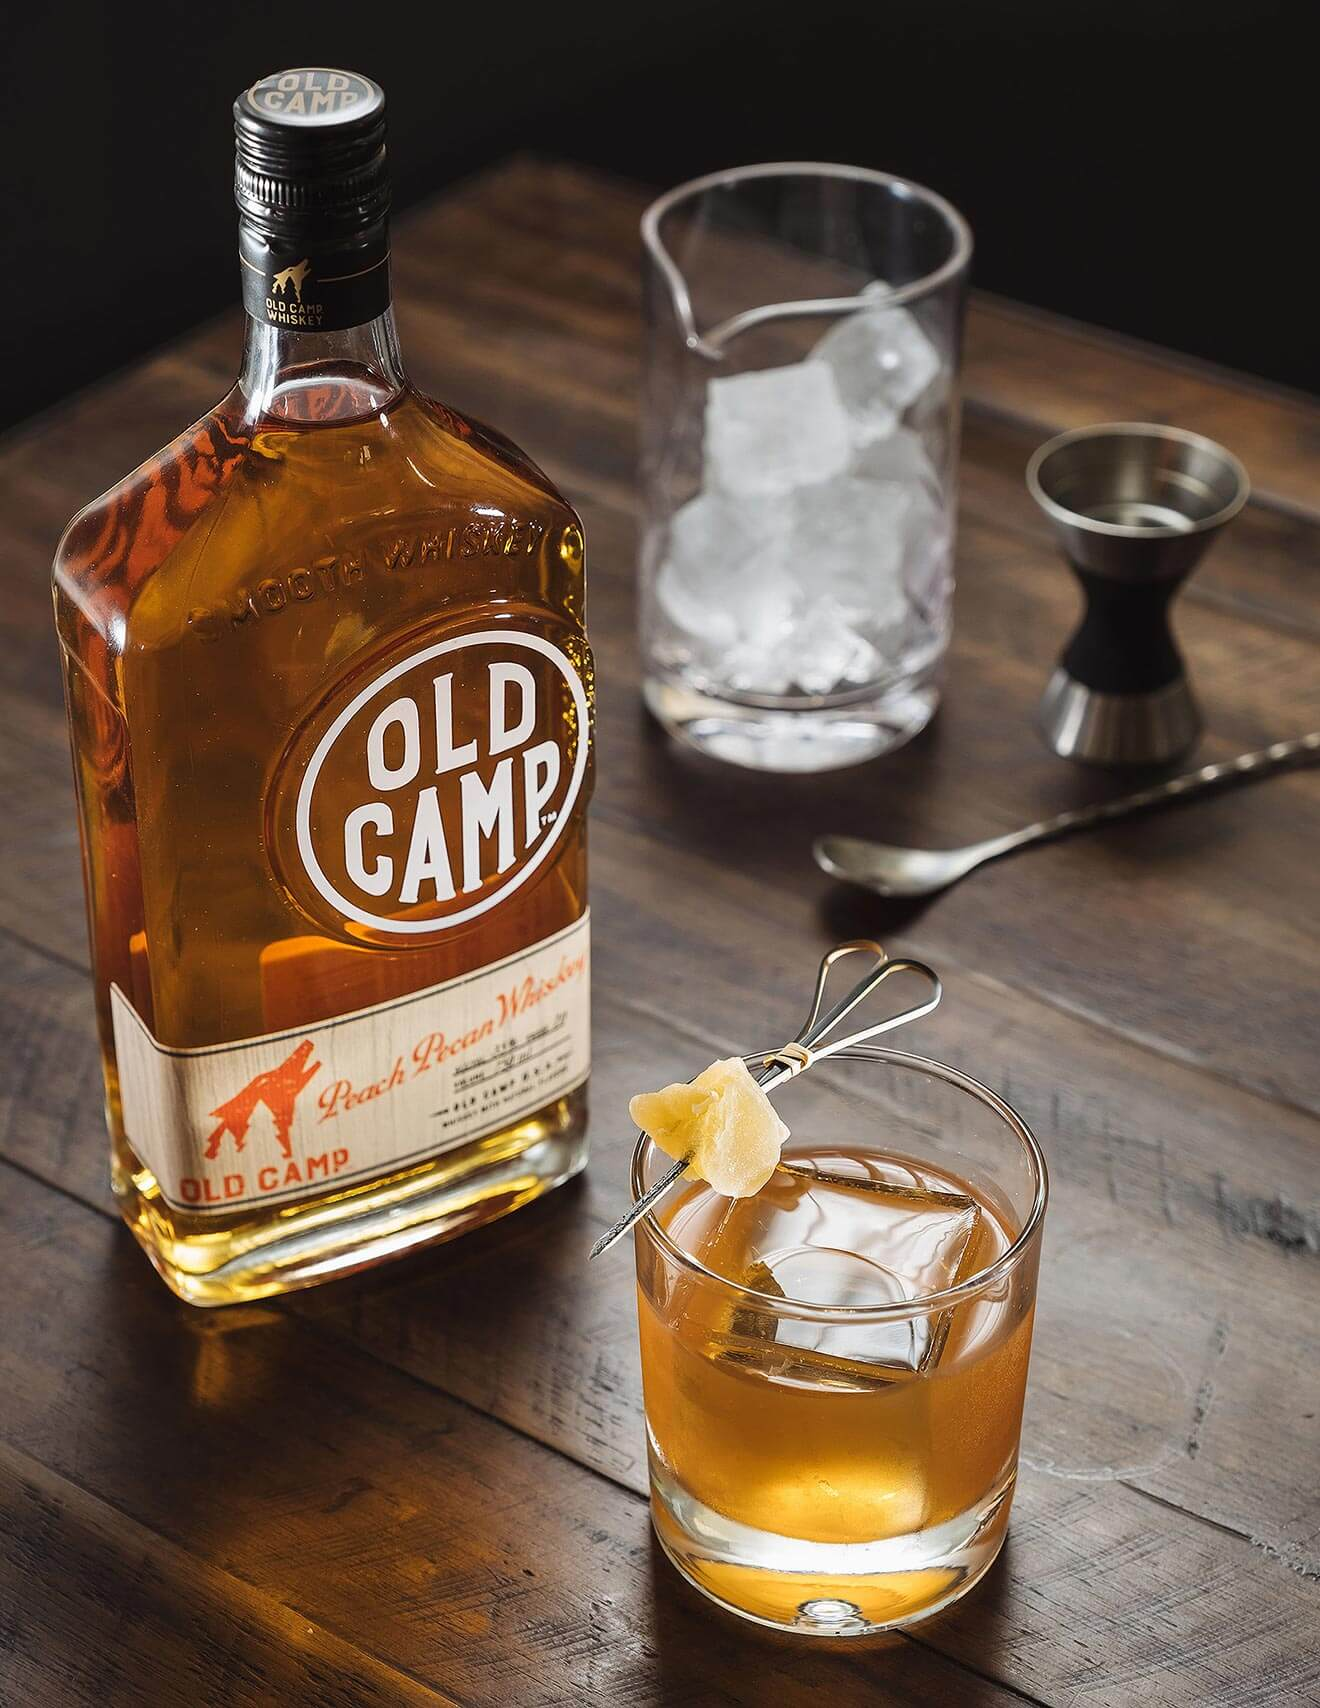 Old Camp Fashioned, bottle and cocktail, ice glass and garnish